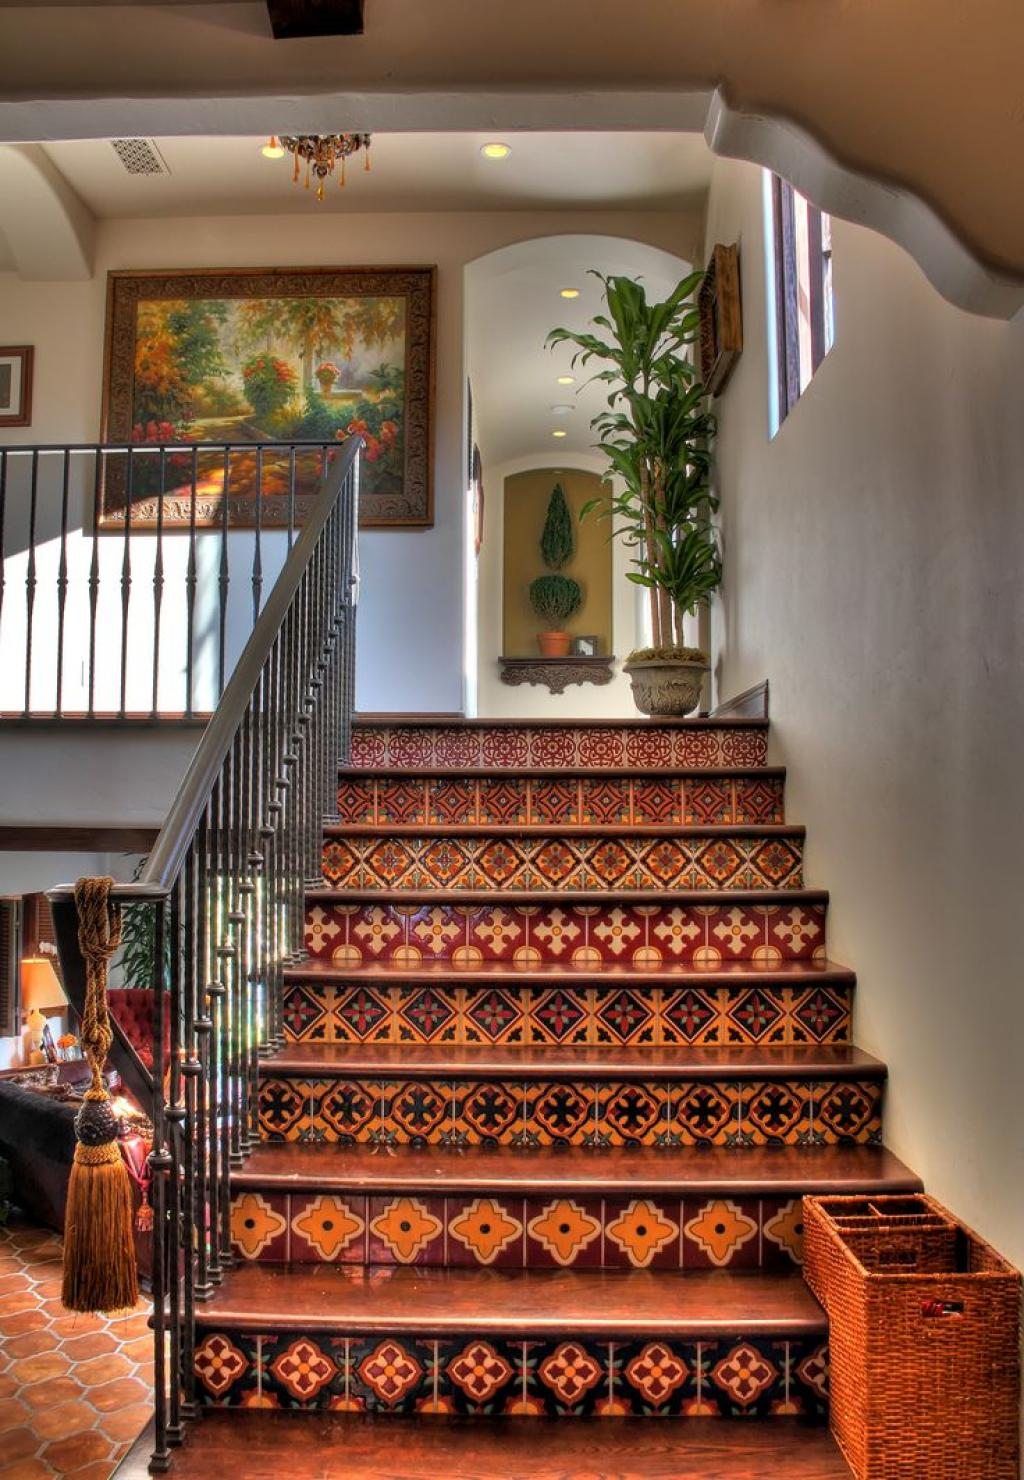 Mediterranean spanish style homes interior stairs decor for Home decorations sale